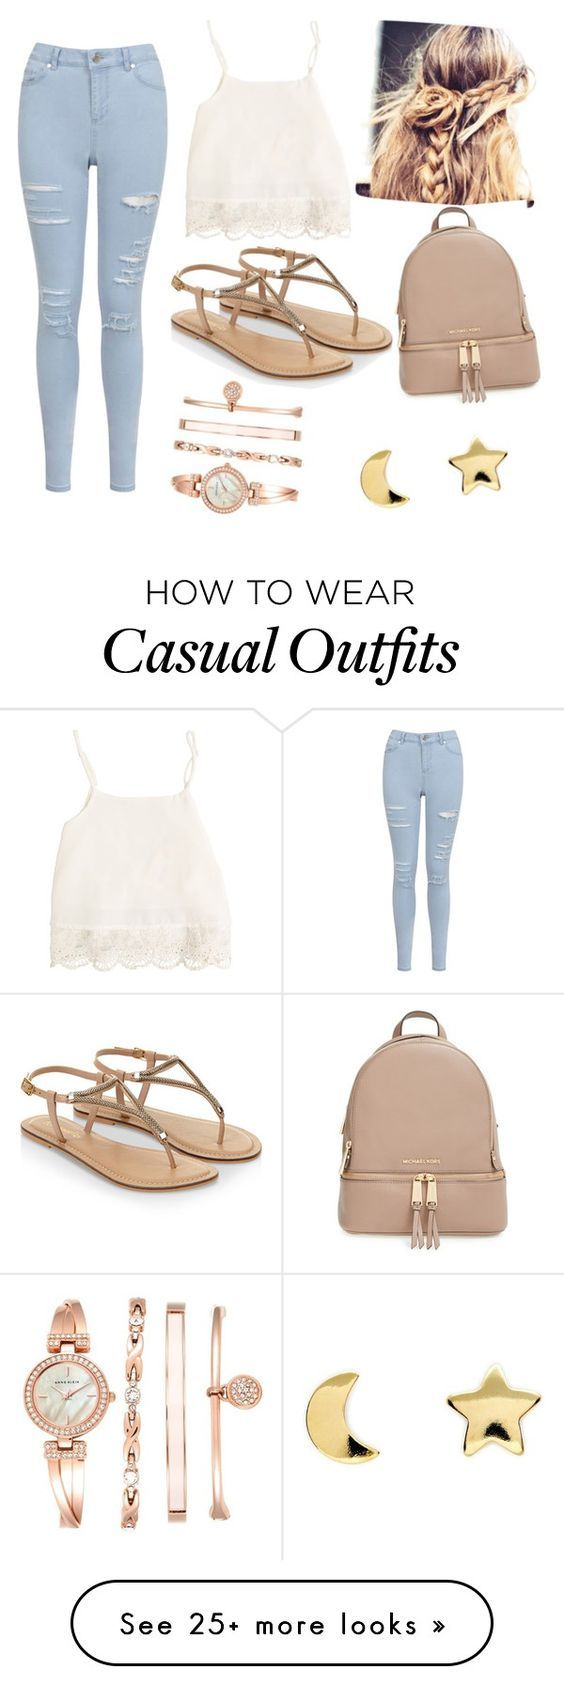 """Casual Day ♥"" by yanina-r-farfan on Polyvore featuring Miss Selfridge, Swell, Accessorize, MICHAEL Michael Kors, Anne Klein and Erica Weiner"